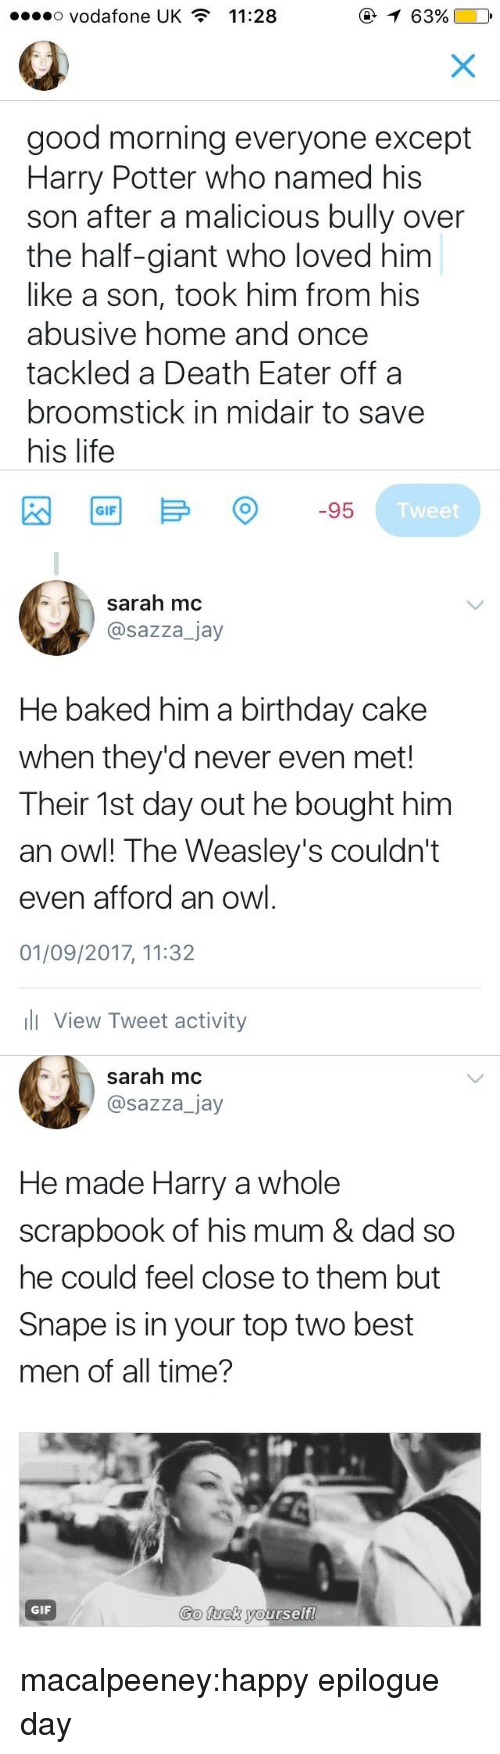 Baked, Birthday, and Broomstick: o Vodafone UK  11:28  0  good morning everyone except  Harry Potter who named his  son after a malicious bully over  the half-giant who loved him  like a son, took him from his  abusive home and once  tackled a Death Eater offa  broomstick in midair to save  his life  Tweet   sarah mc  @sazza_jay  He baked him a birthday cake  when they'd never even met!  Their 1st day out he bought him  an owl! The Weasley's couldn't  even afford an owl  01/09/2017, 11:32  l View Tweet activity   sarah mc  @sazza_jay  He made Harry a whole  scrapbook of his mum & dad so  he could feel close to them but  Snape is in your top two best  men of all time?  Go fuck yourself  GIF macalpeeney:happy epilogue day